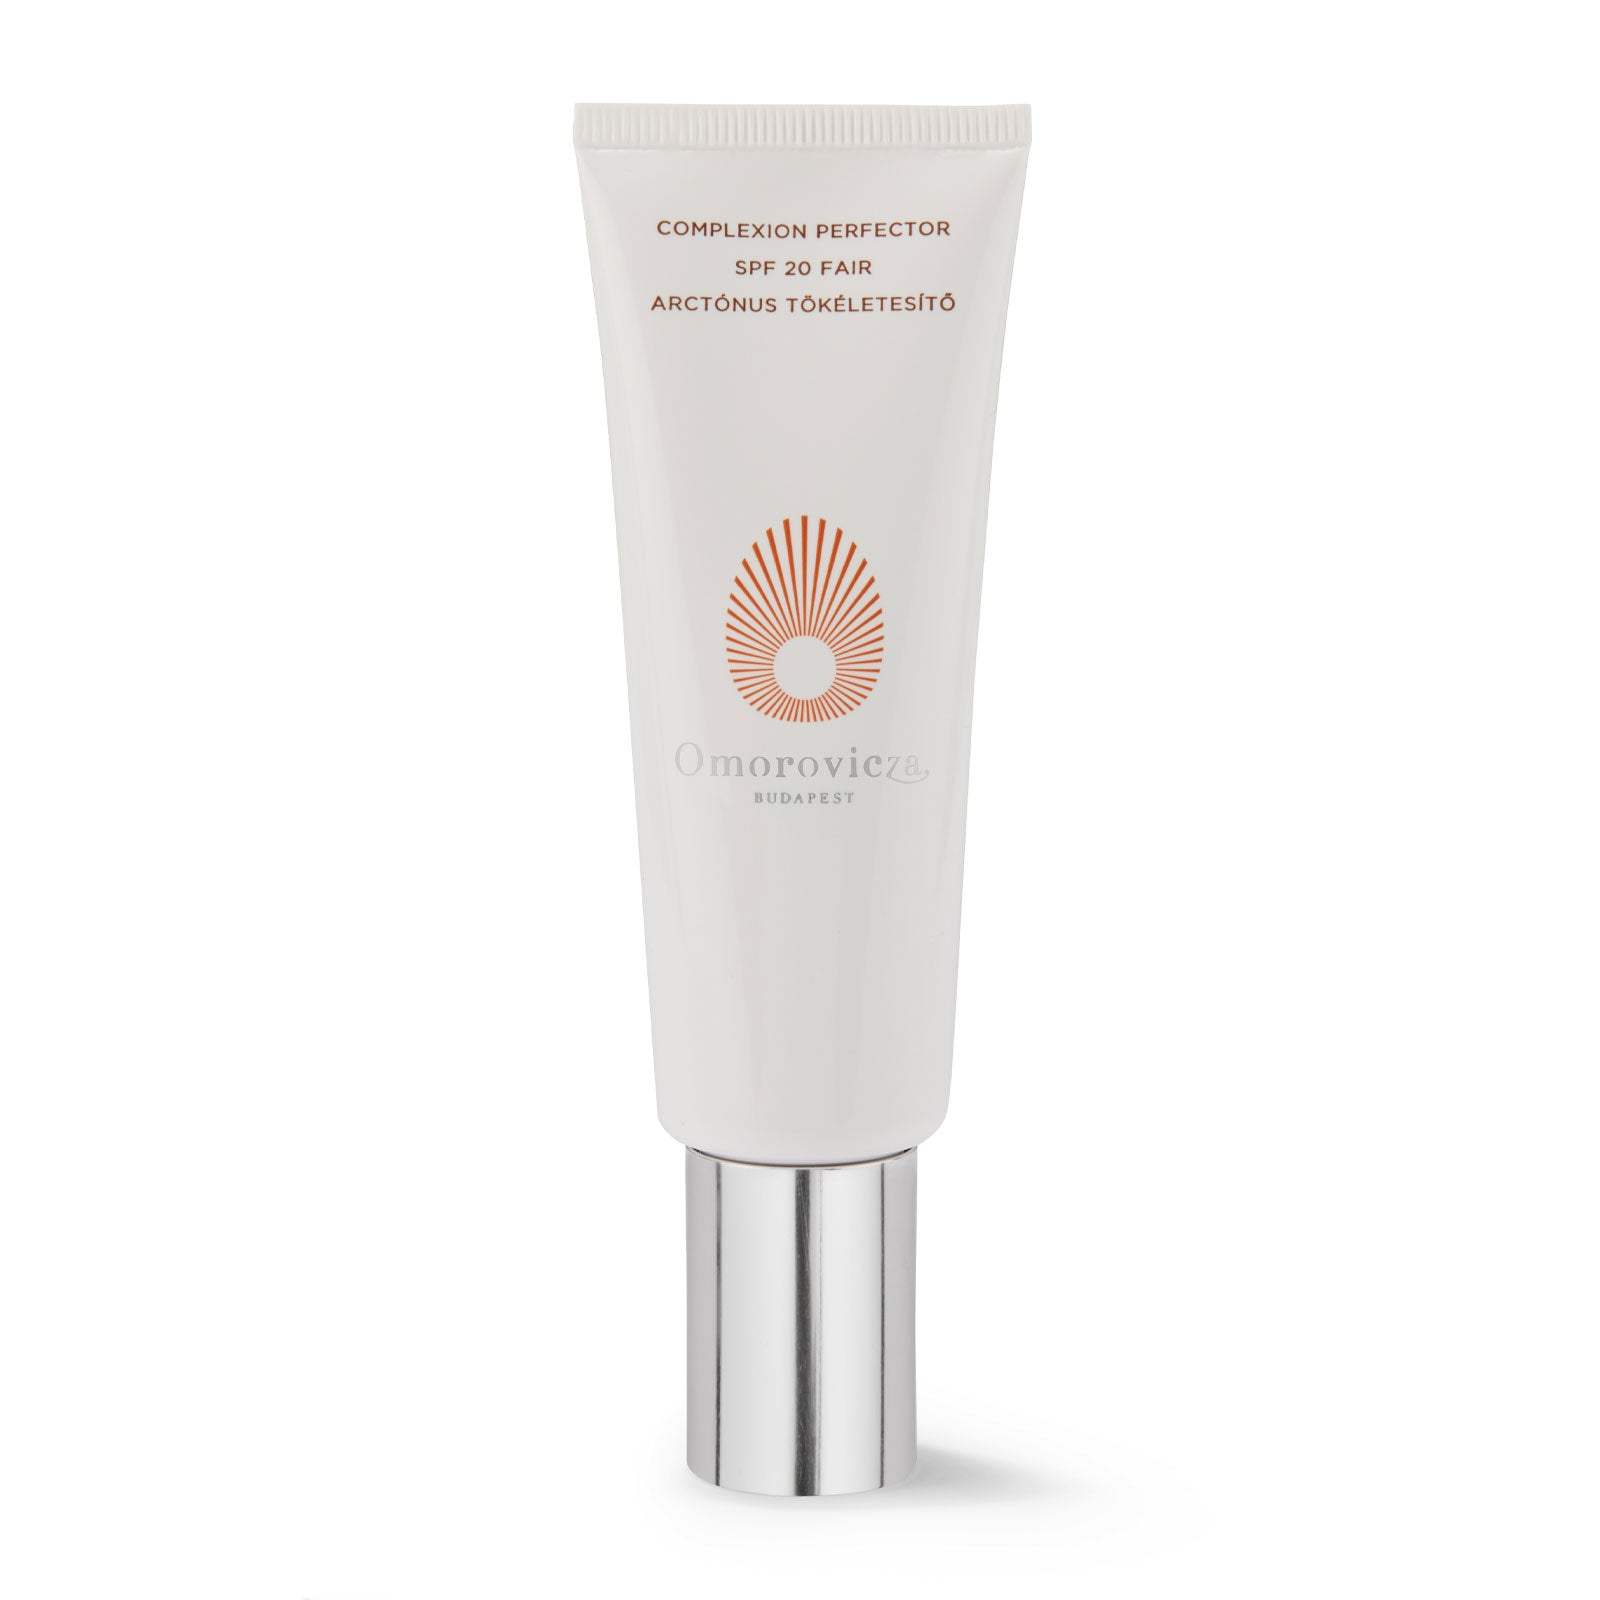 Omorovicza Complexion Perfector Fair SPF20 50ml